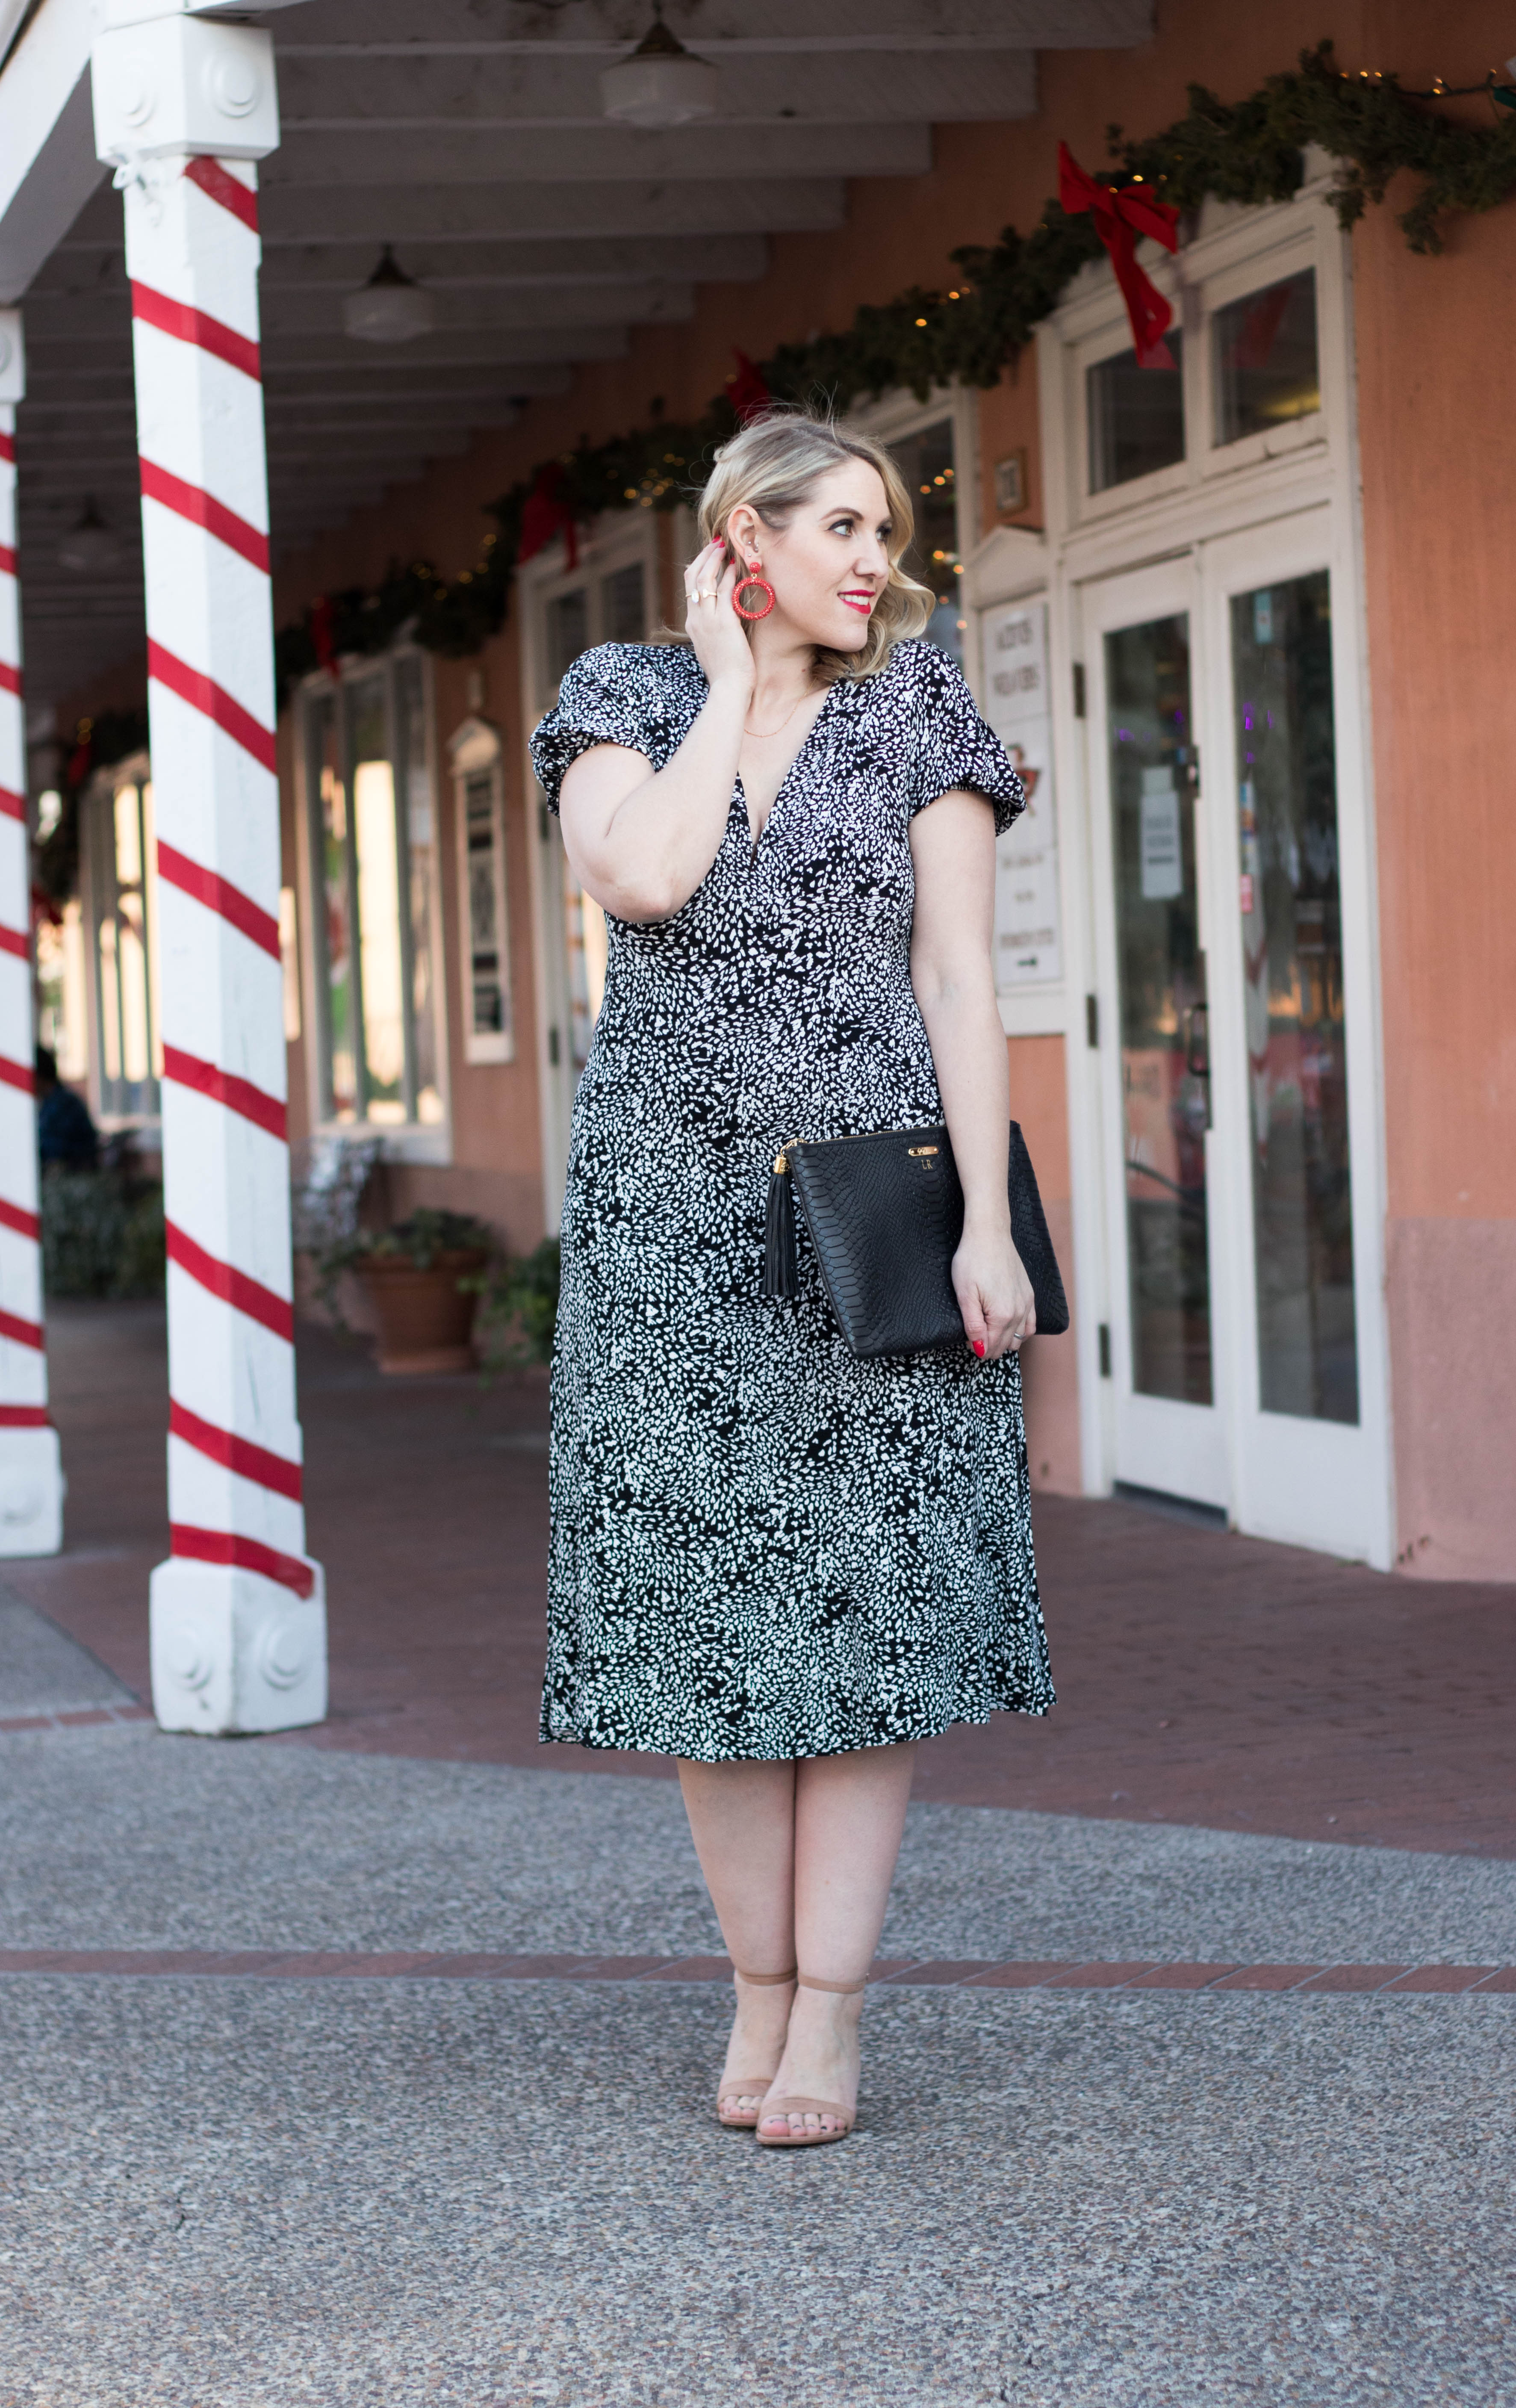 free people dress for the holidays #holidaystyle #christmasoutfit #mididress